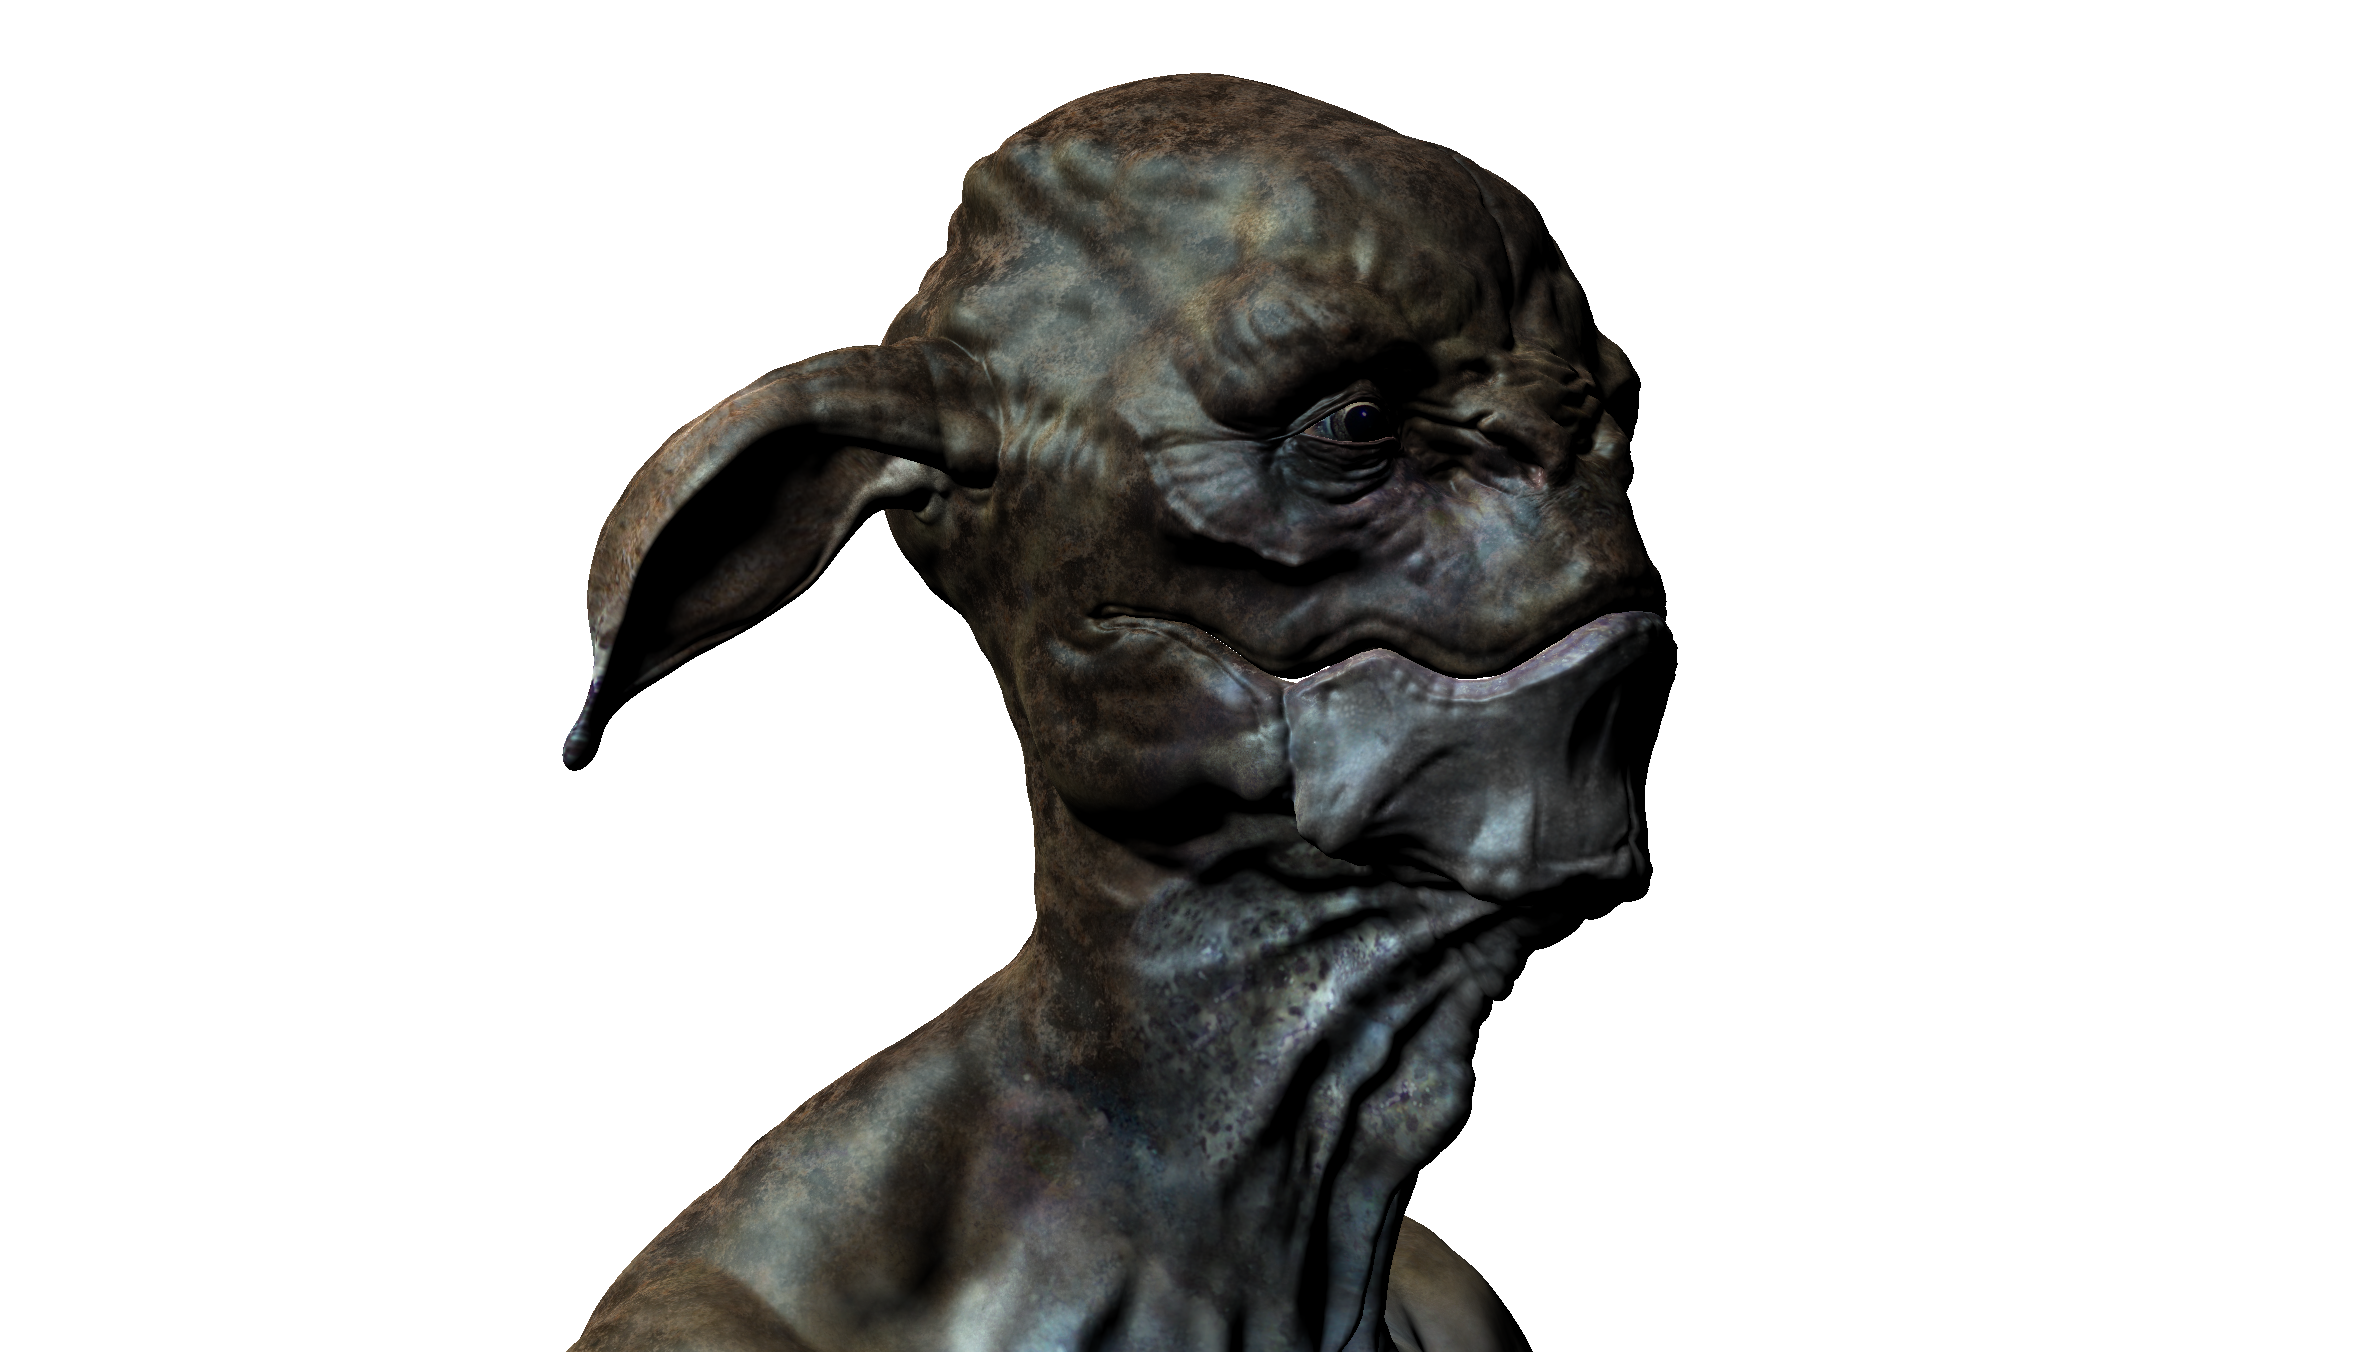 creature_tex_rough_v1b.png